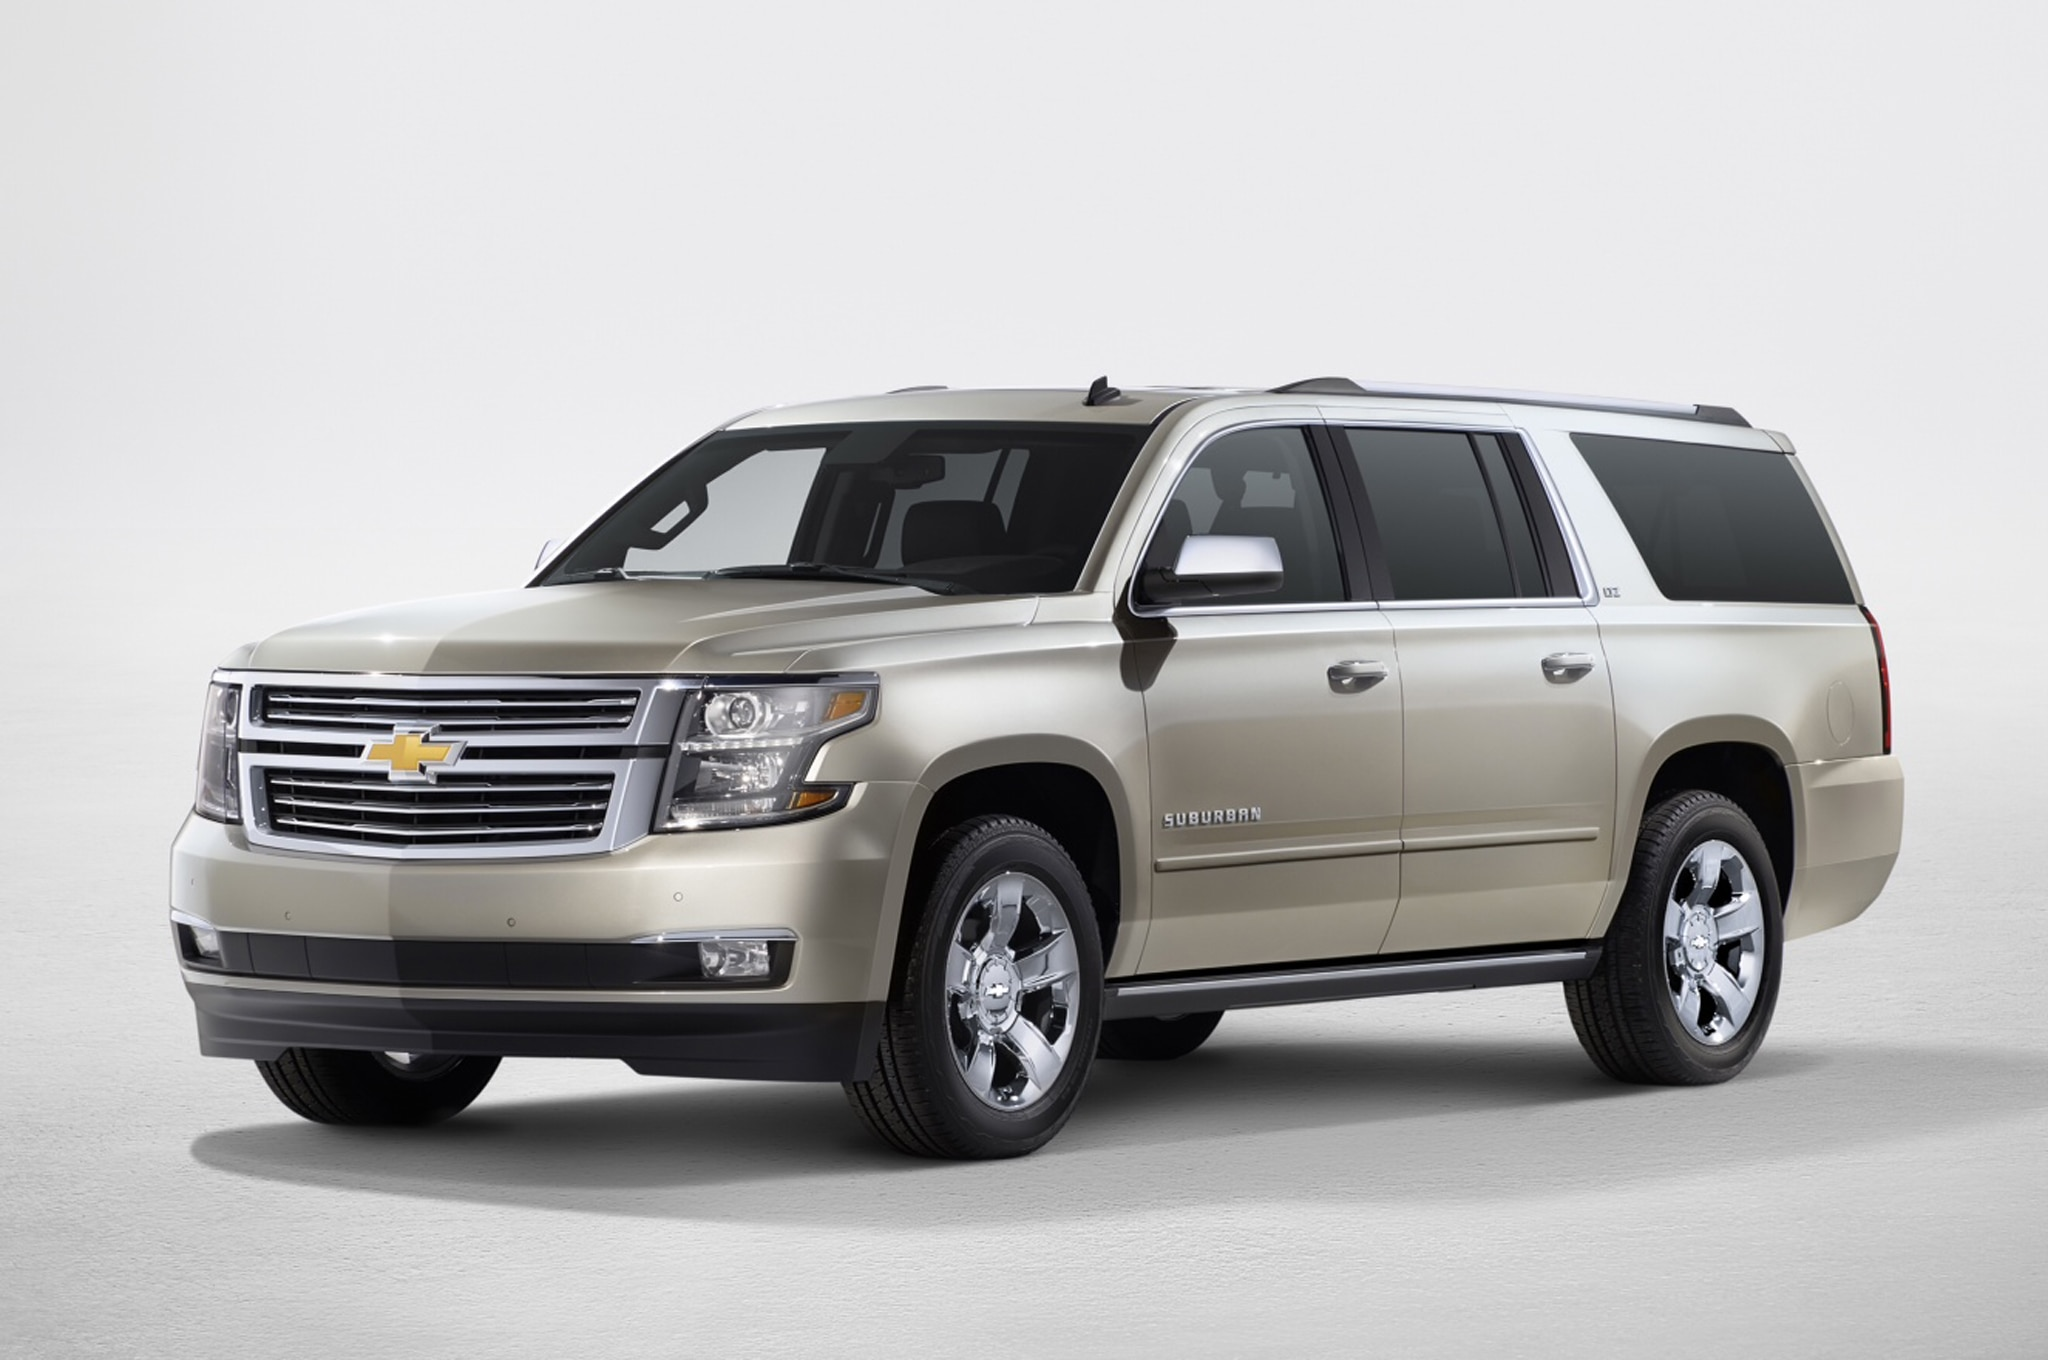 Both prices represent significant increases over 2014 tahoe